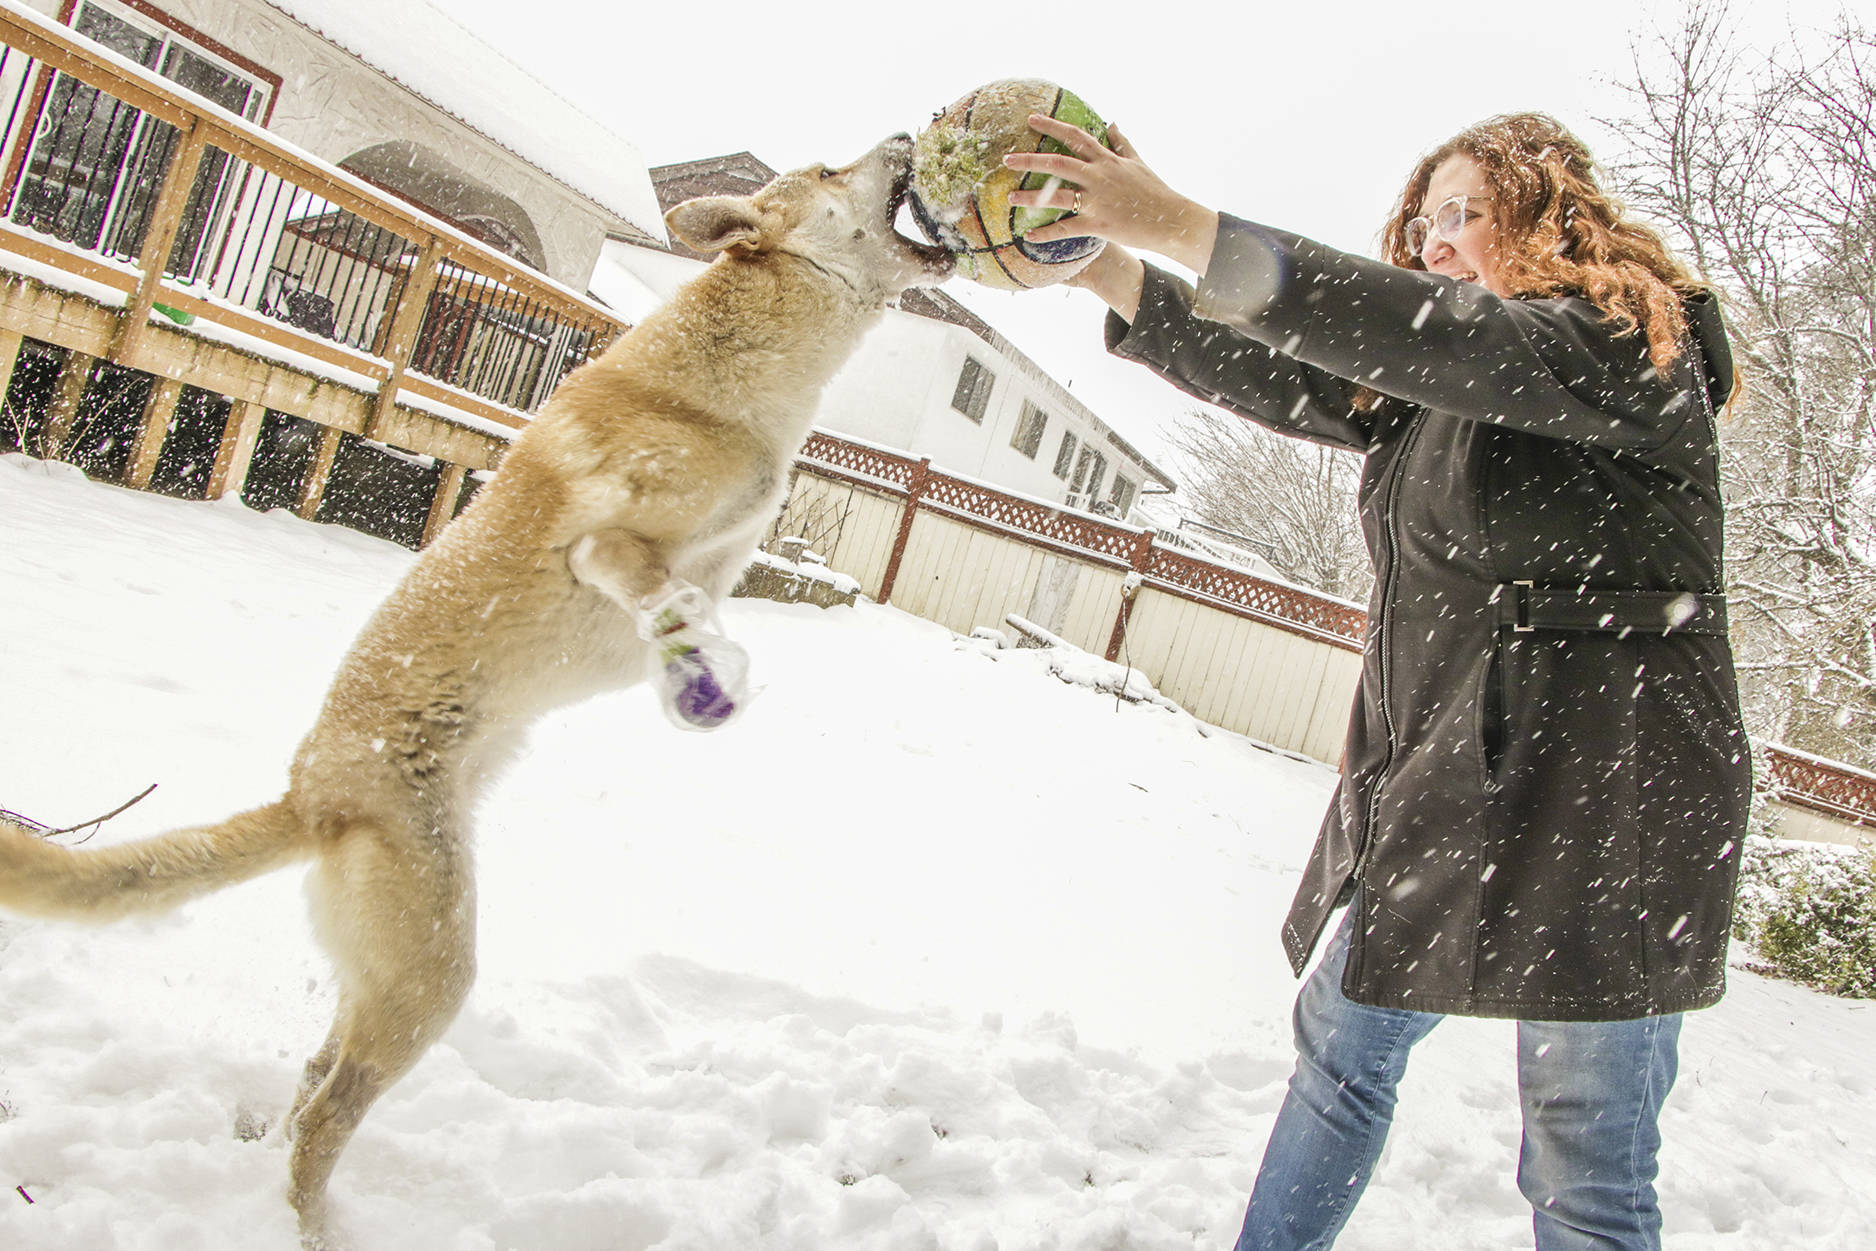 Despite underdeveloped front legs, Roo has little problem standing tall and playing with Julie Horncastle, her human companion who is fostering the Iranian-born canine with the intention of adopting.                                Dustin Godfrey/Abbotsford News